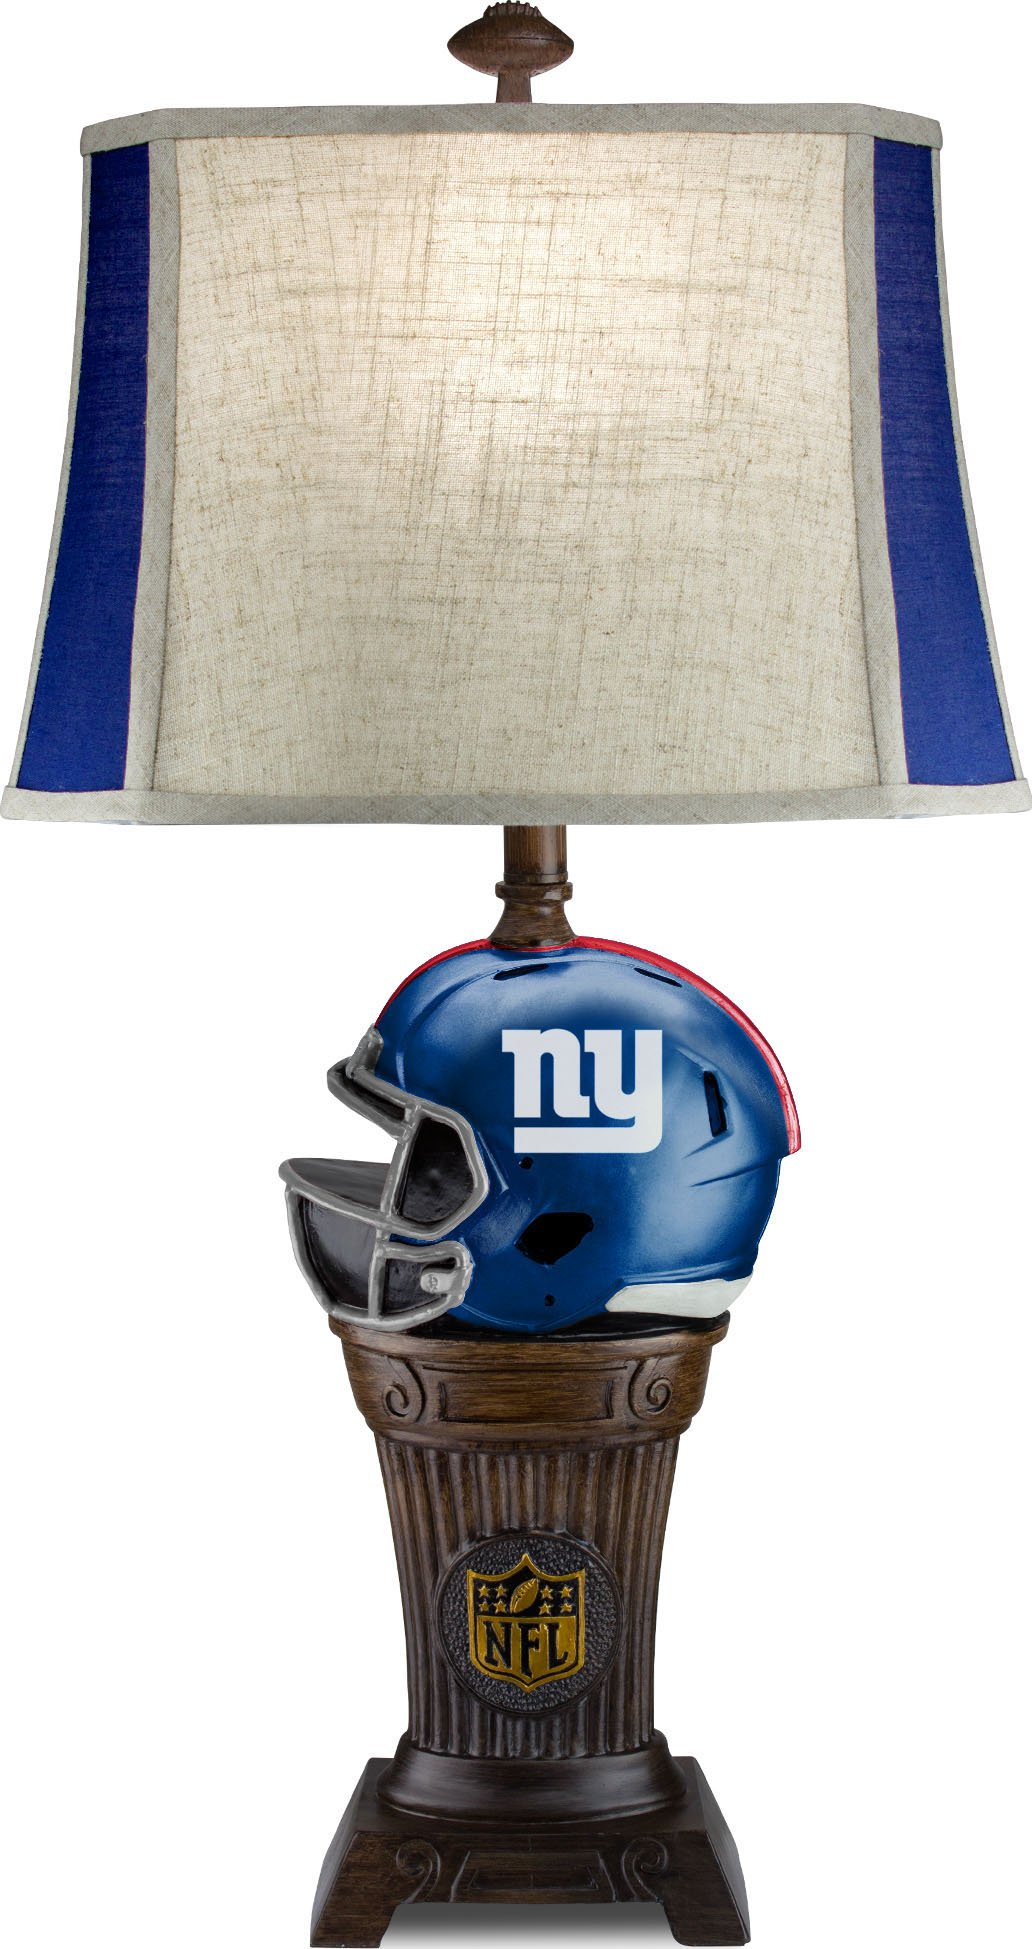 Imperial Officially Licensed NFL Merchandise: Trophy Lamp, New York Giants